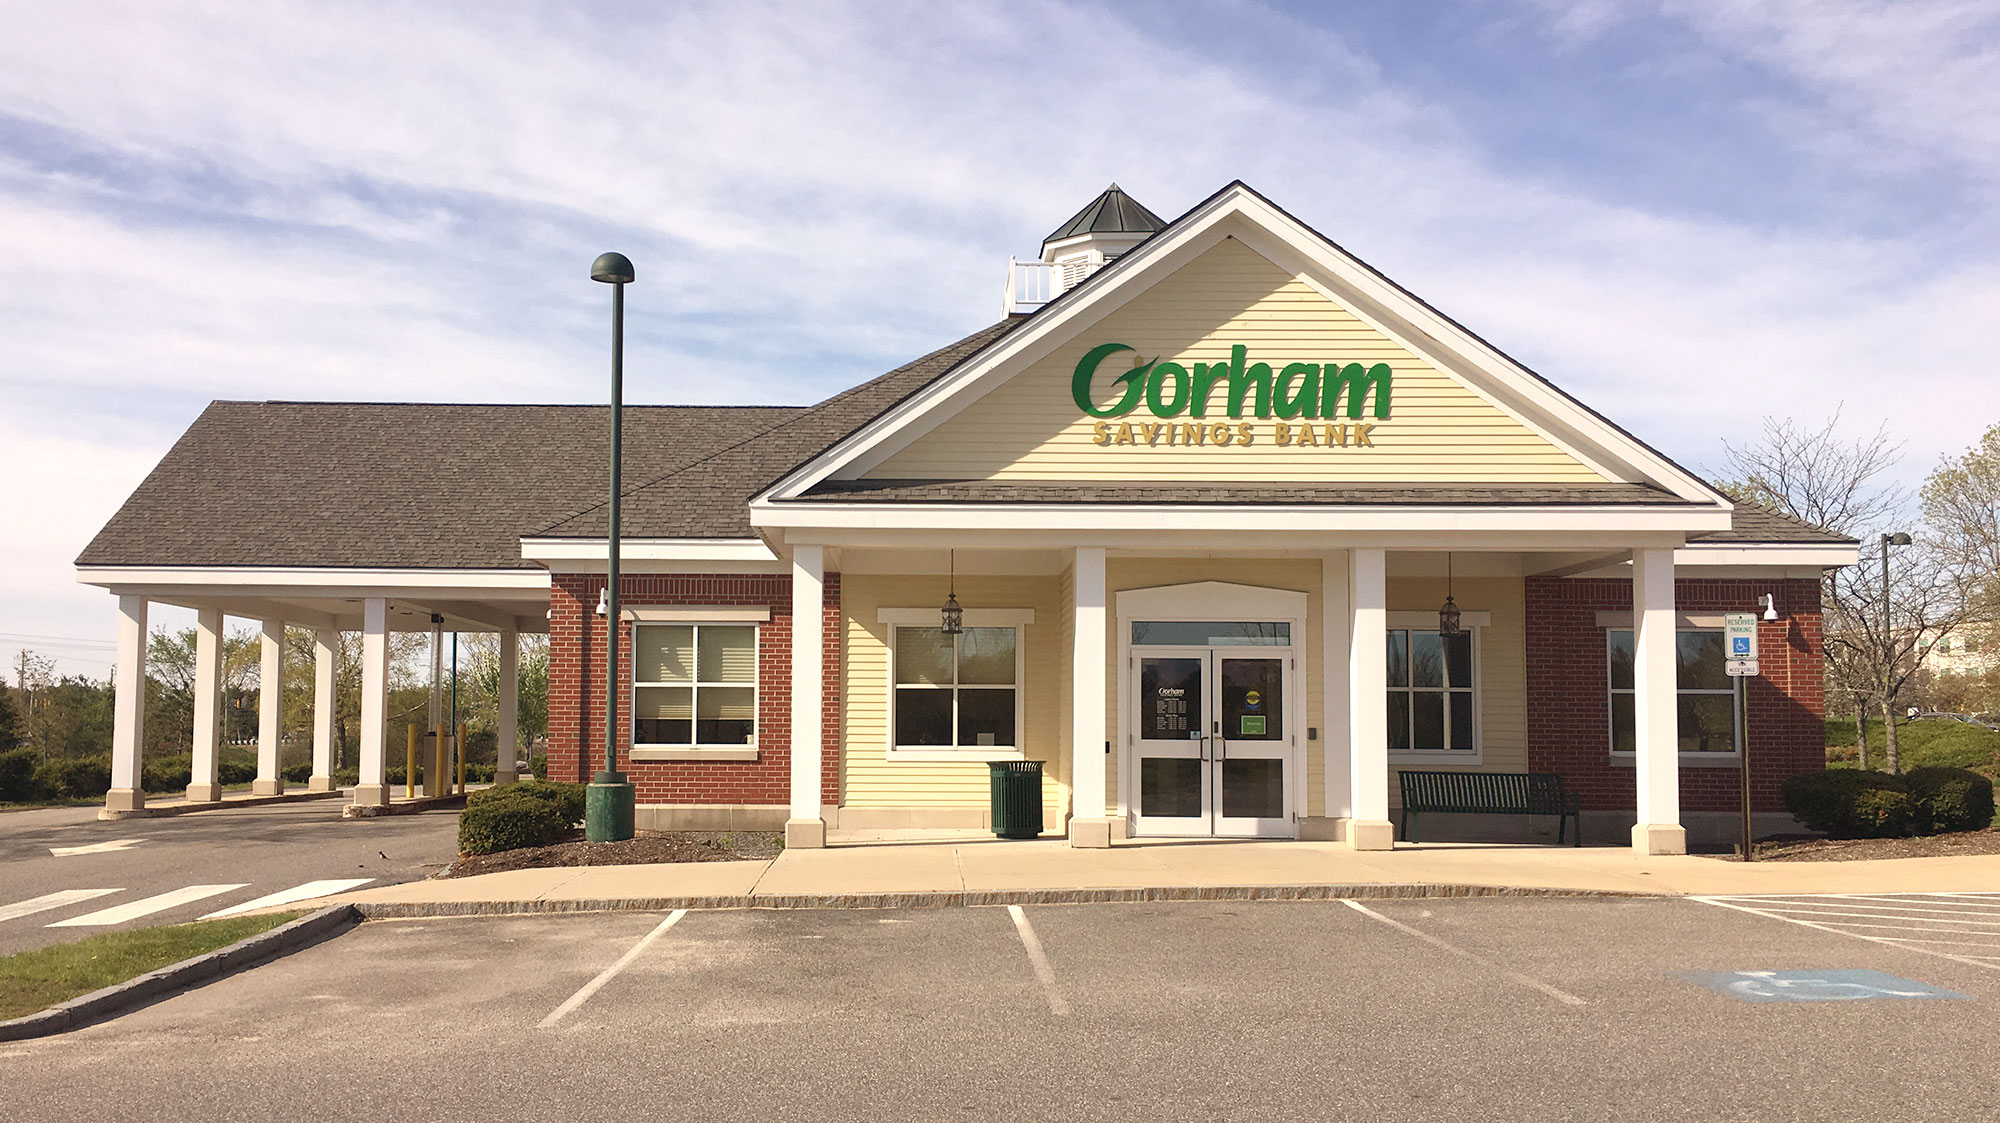 Gorham Savings Bank Falmouth Gray Road outside of building during the day